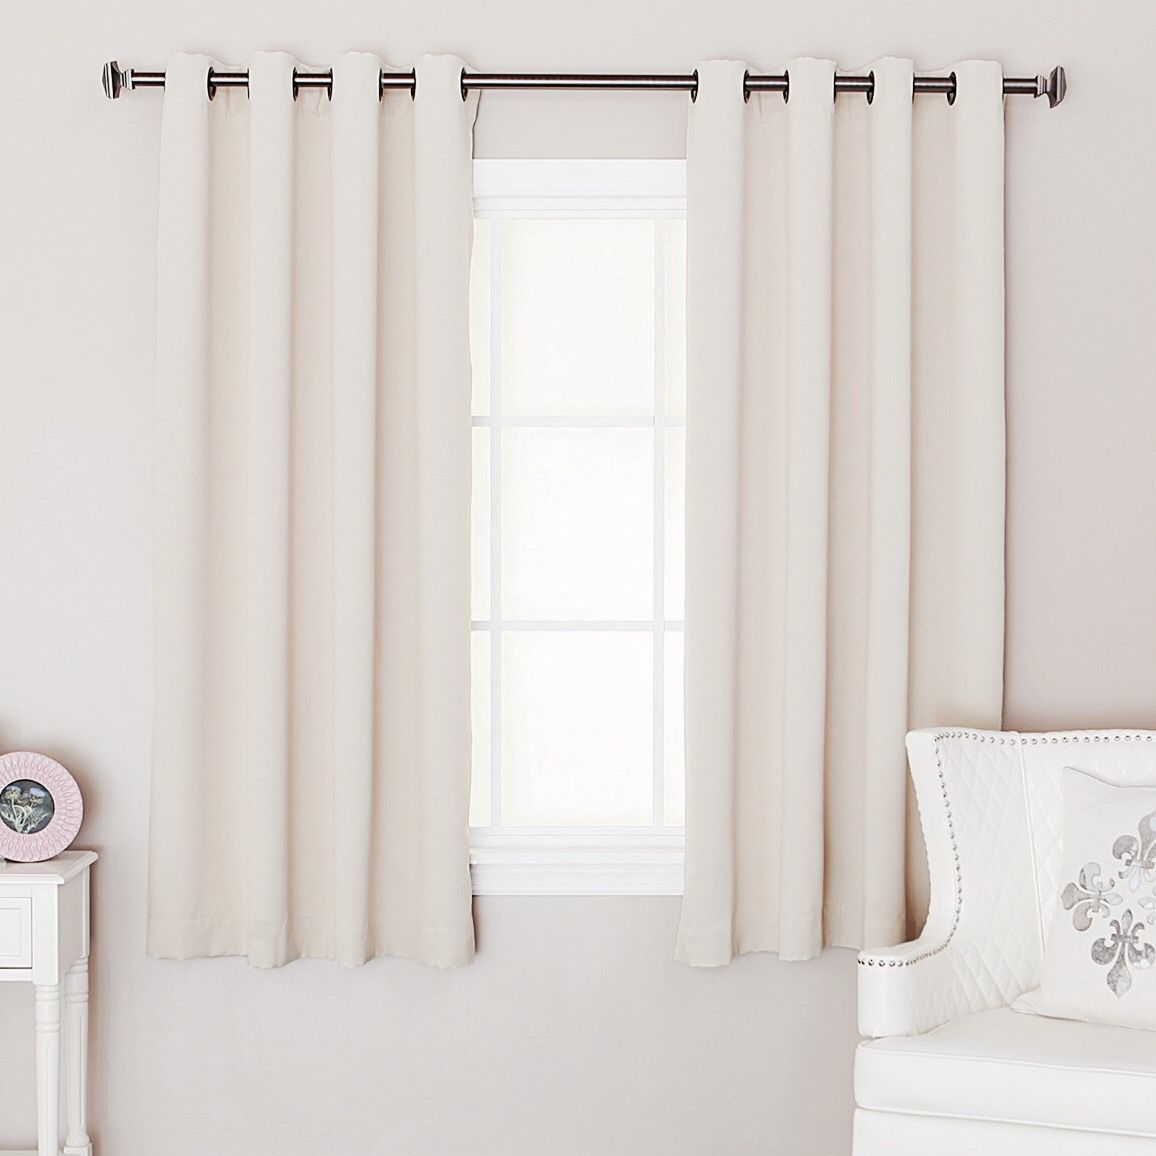 Pictures Of Curtains For Small Windows | Curtain ...